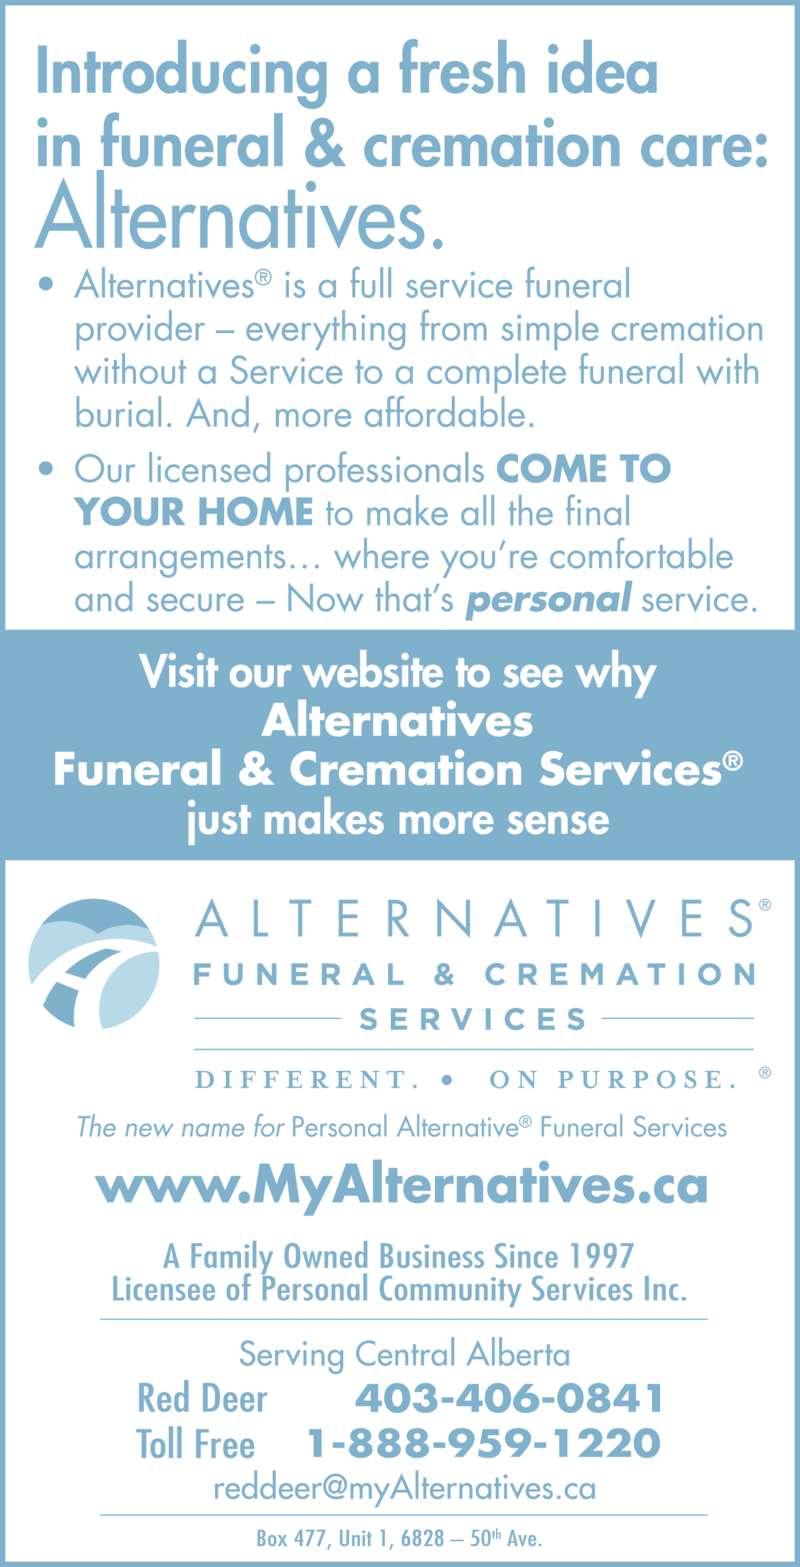 Alternatives Funeral & Cremation Services (4033415181) - Display Ad - 403-341-5181 1-888-216-5111